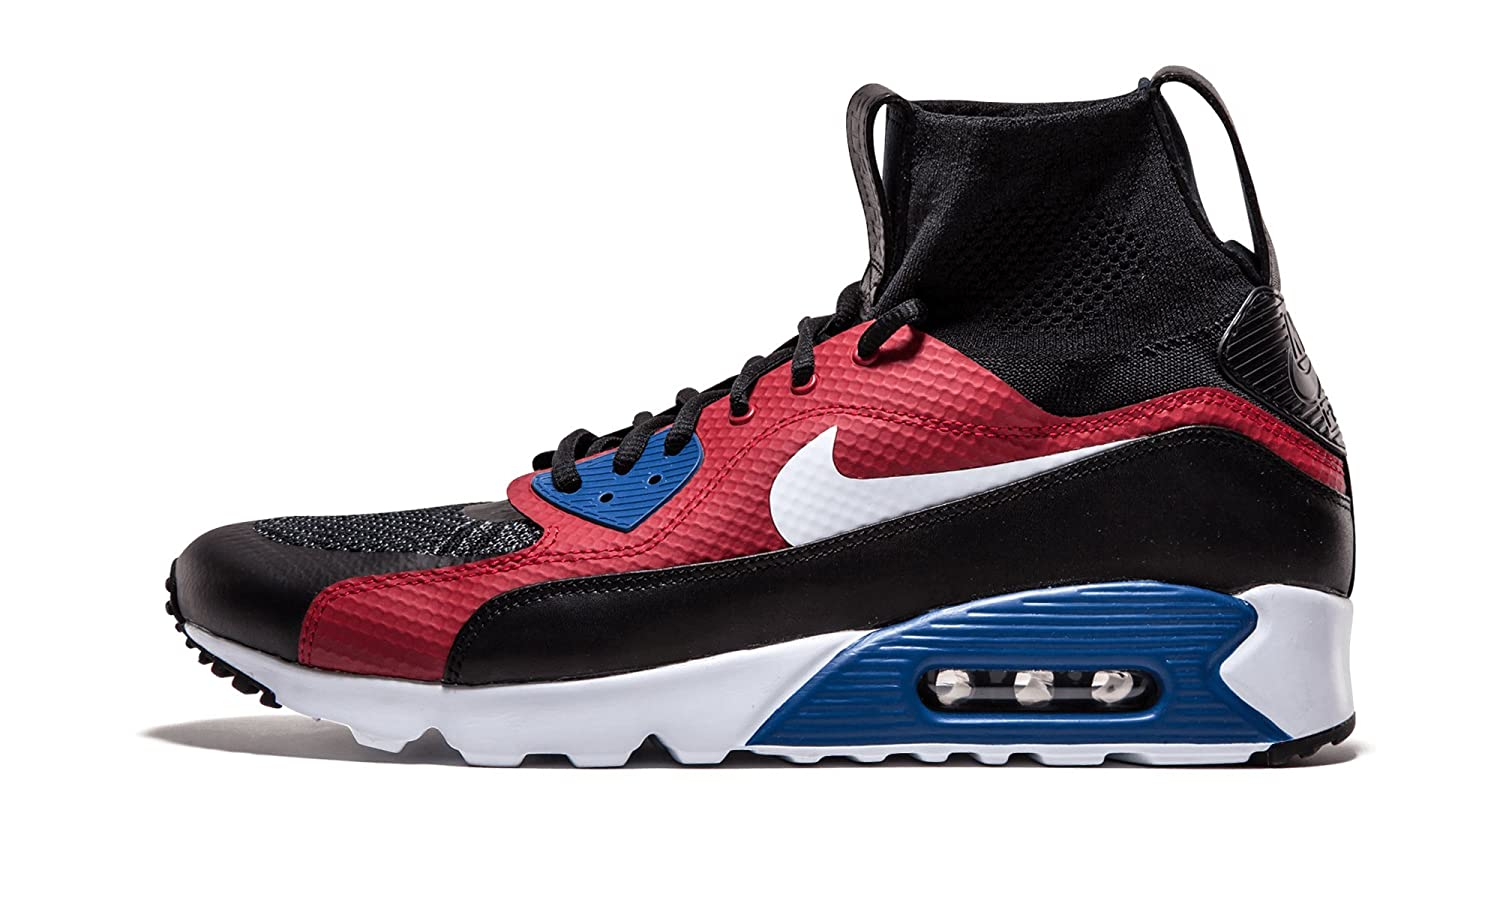 detailed look d0cf0 1e5d7 Nike Air Max 90 Ultra Superfly T 'Tinker Hatfield' 850613-001 Mens Size 13 (